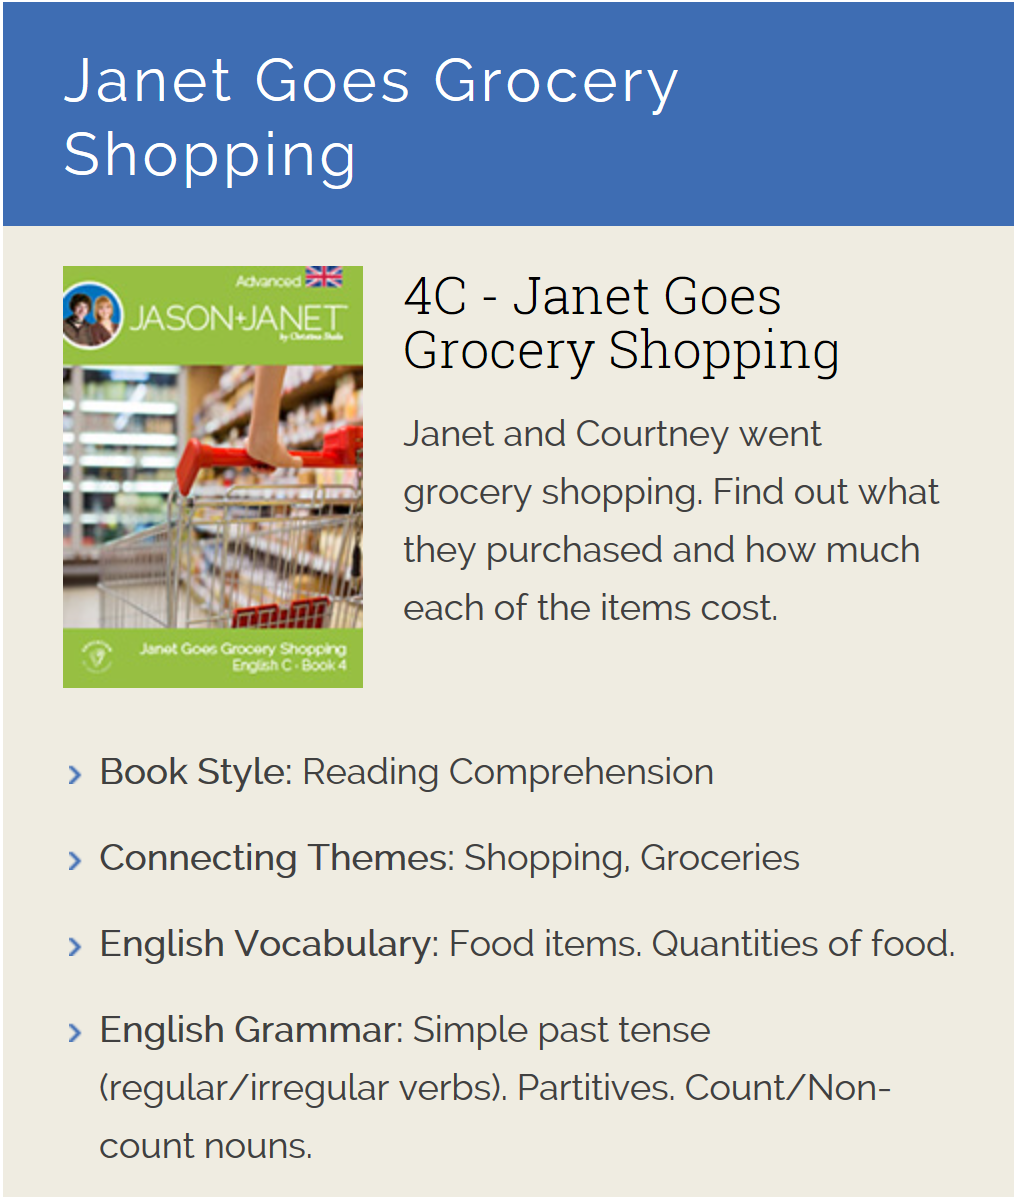 Janet Goes Grocery Shopping - ESL eBook